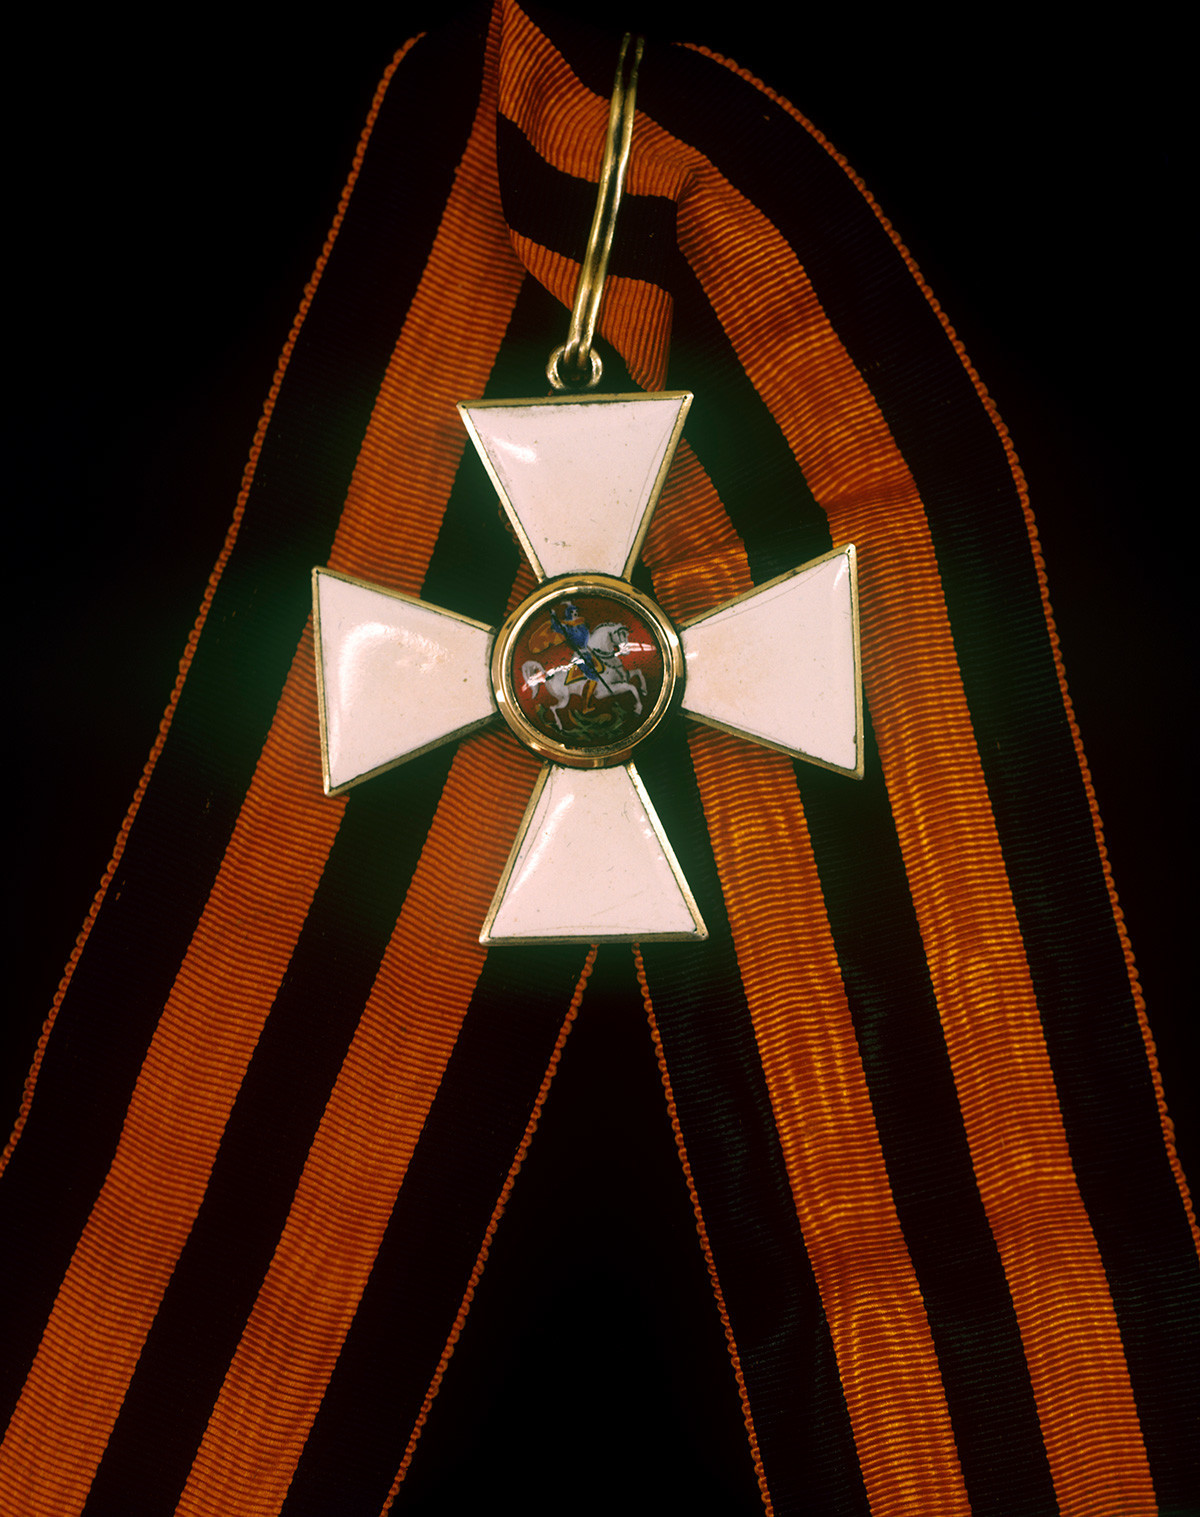 The Cross (Badge) of the Order of St. George, 1st Class